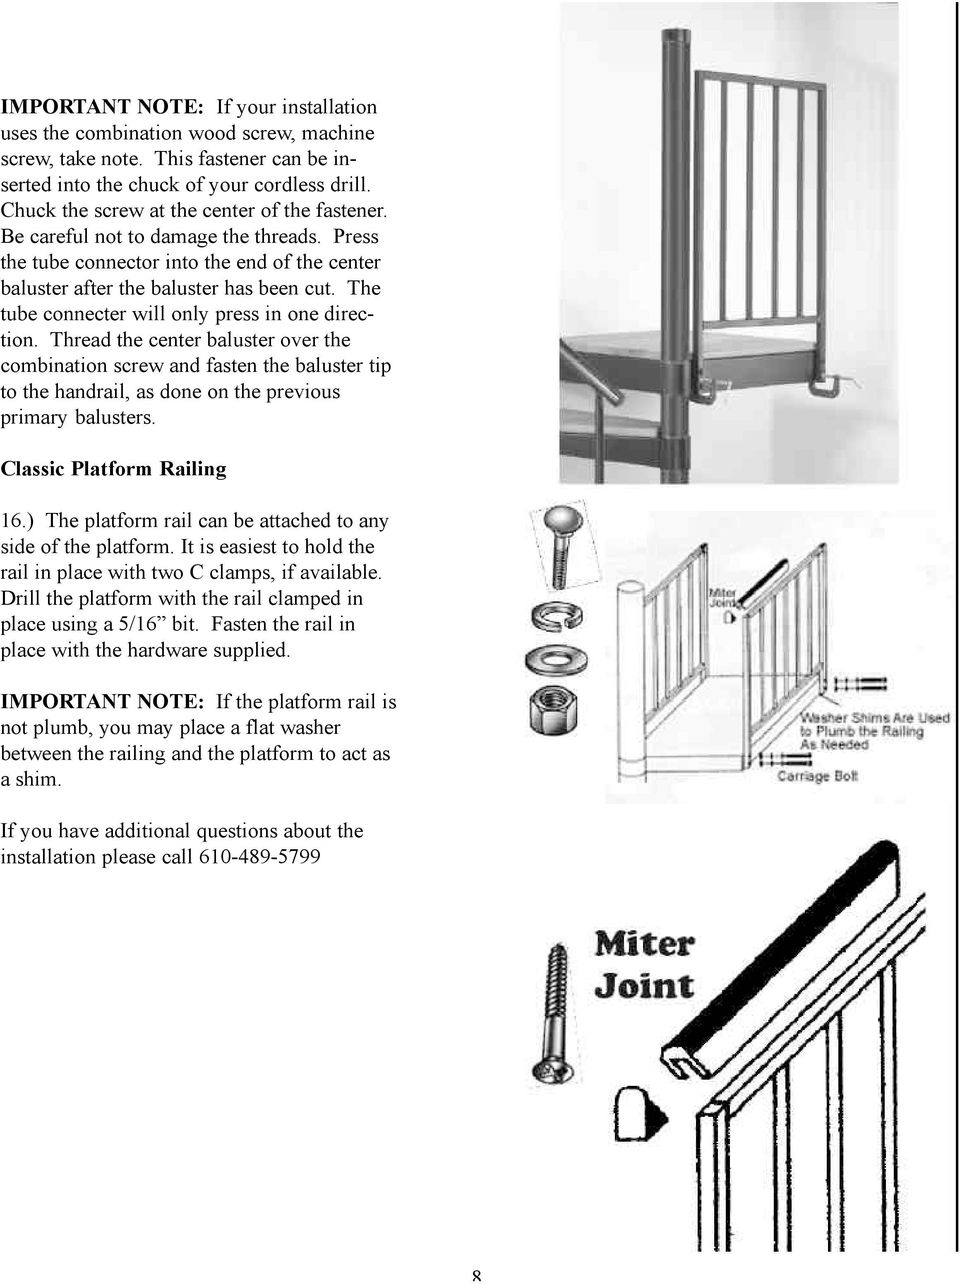 The tube connecter will only press in one direction. Thread the center baluster over the combination screw and fasten the baluster tip to the handrail, as done on the previous primary balusters.